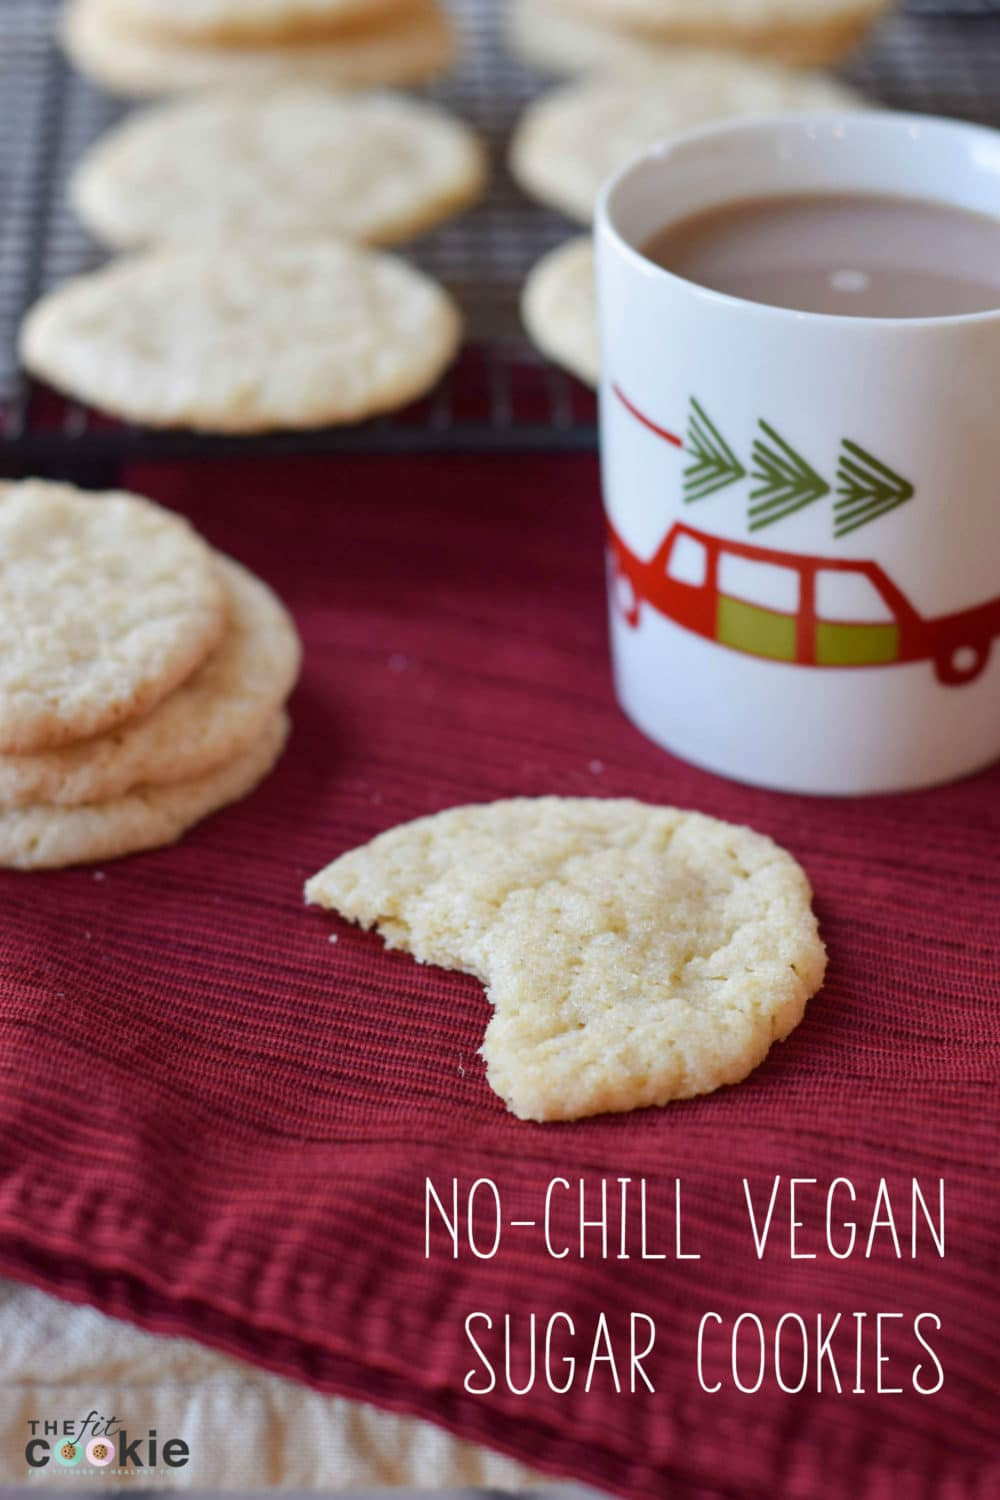 Bake sugar cookies in no time! No-Chill Vegan Sugar Cookies (nut-free) - @TheFitCookie #cookies #vegan #nutfree